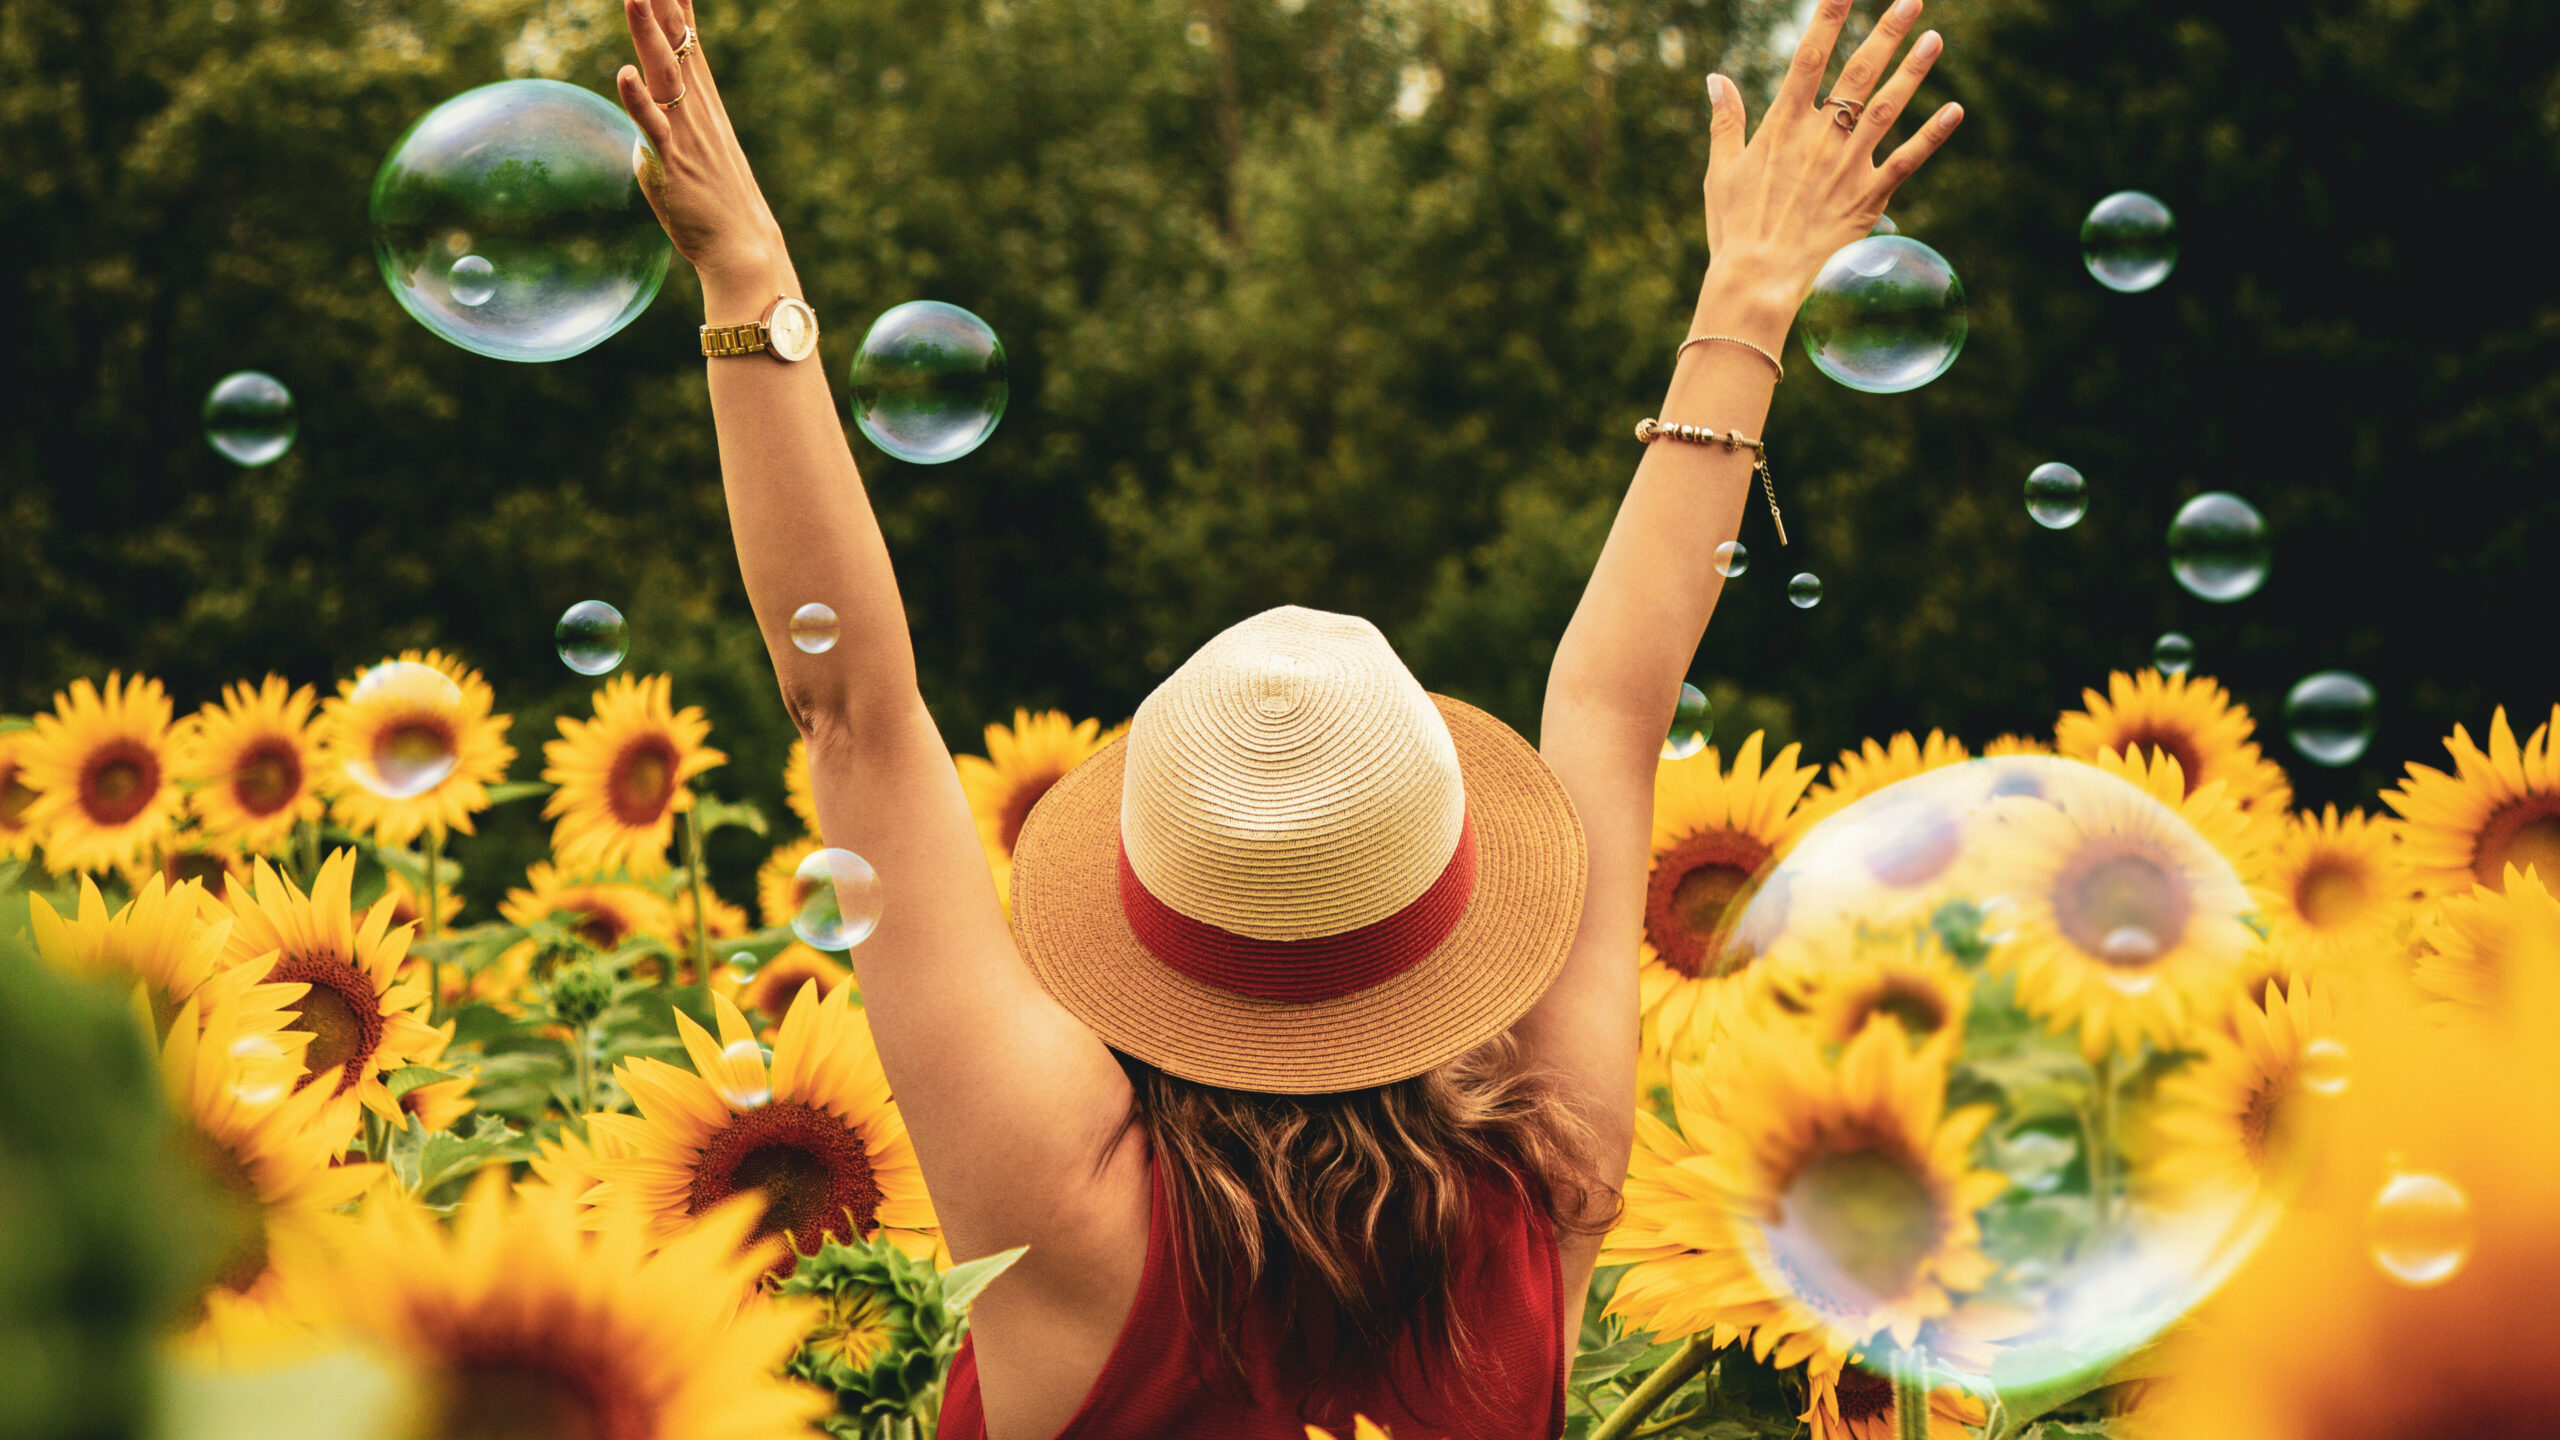 Woman faces away from camera. She walks into field of sunflowers with arms raised and bubbles are in the air around her. She wears a straw hat with red ribbon and a matching red shirt.